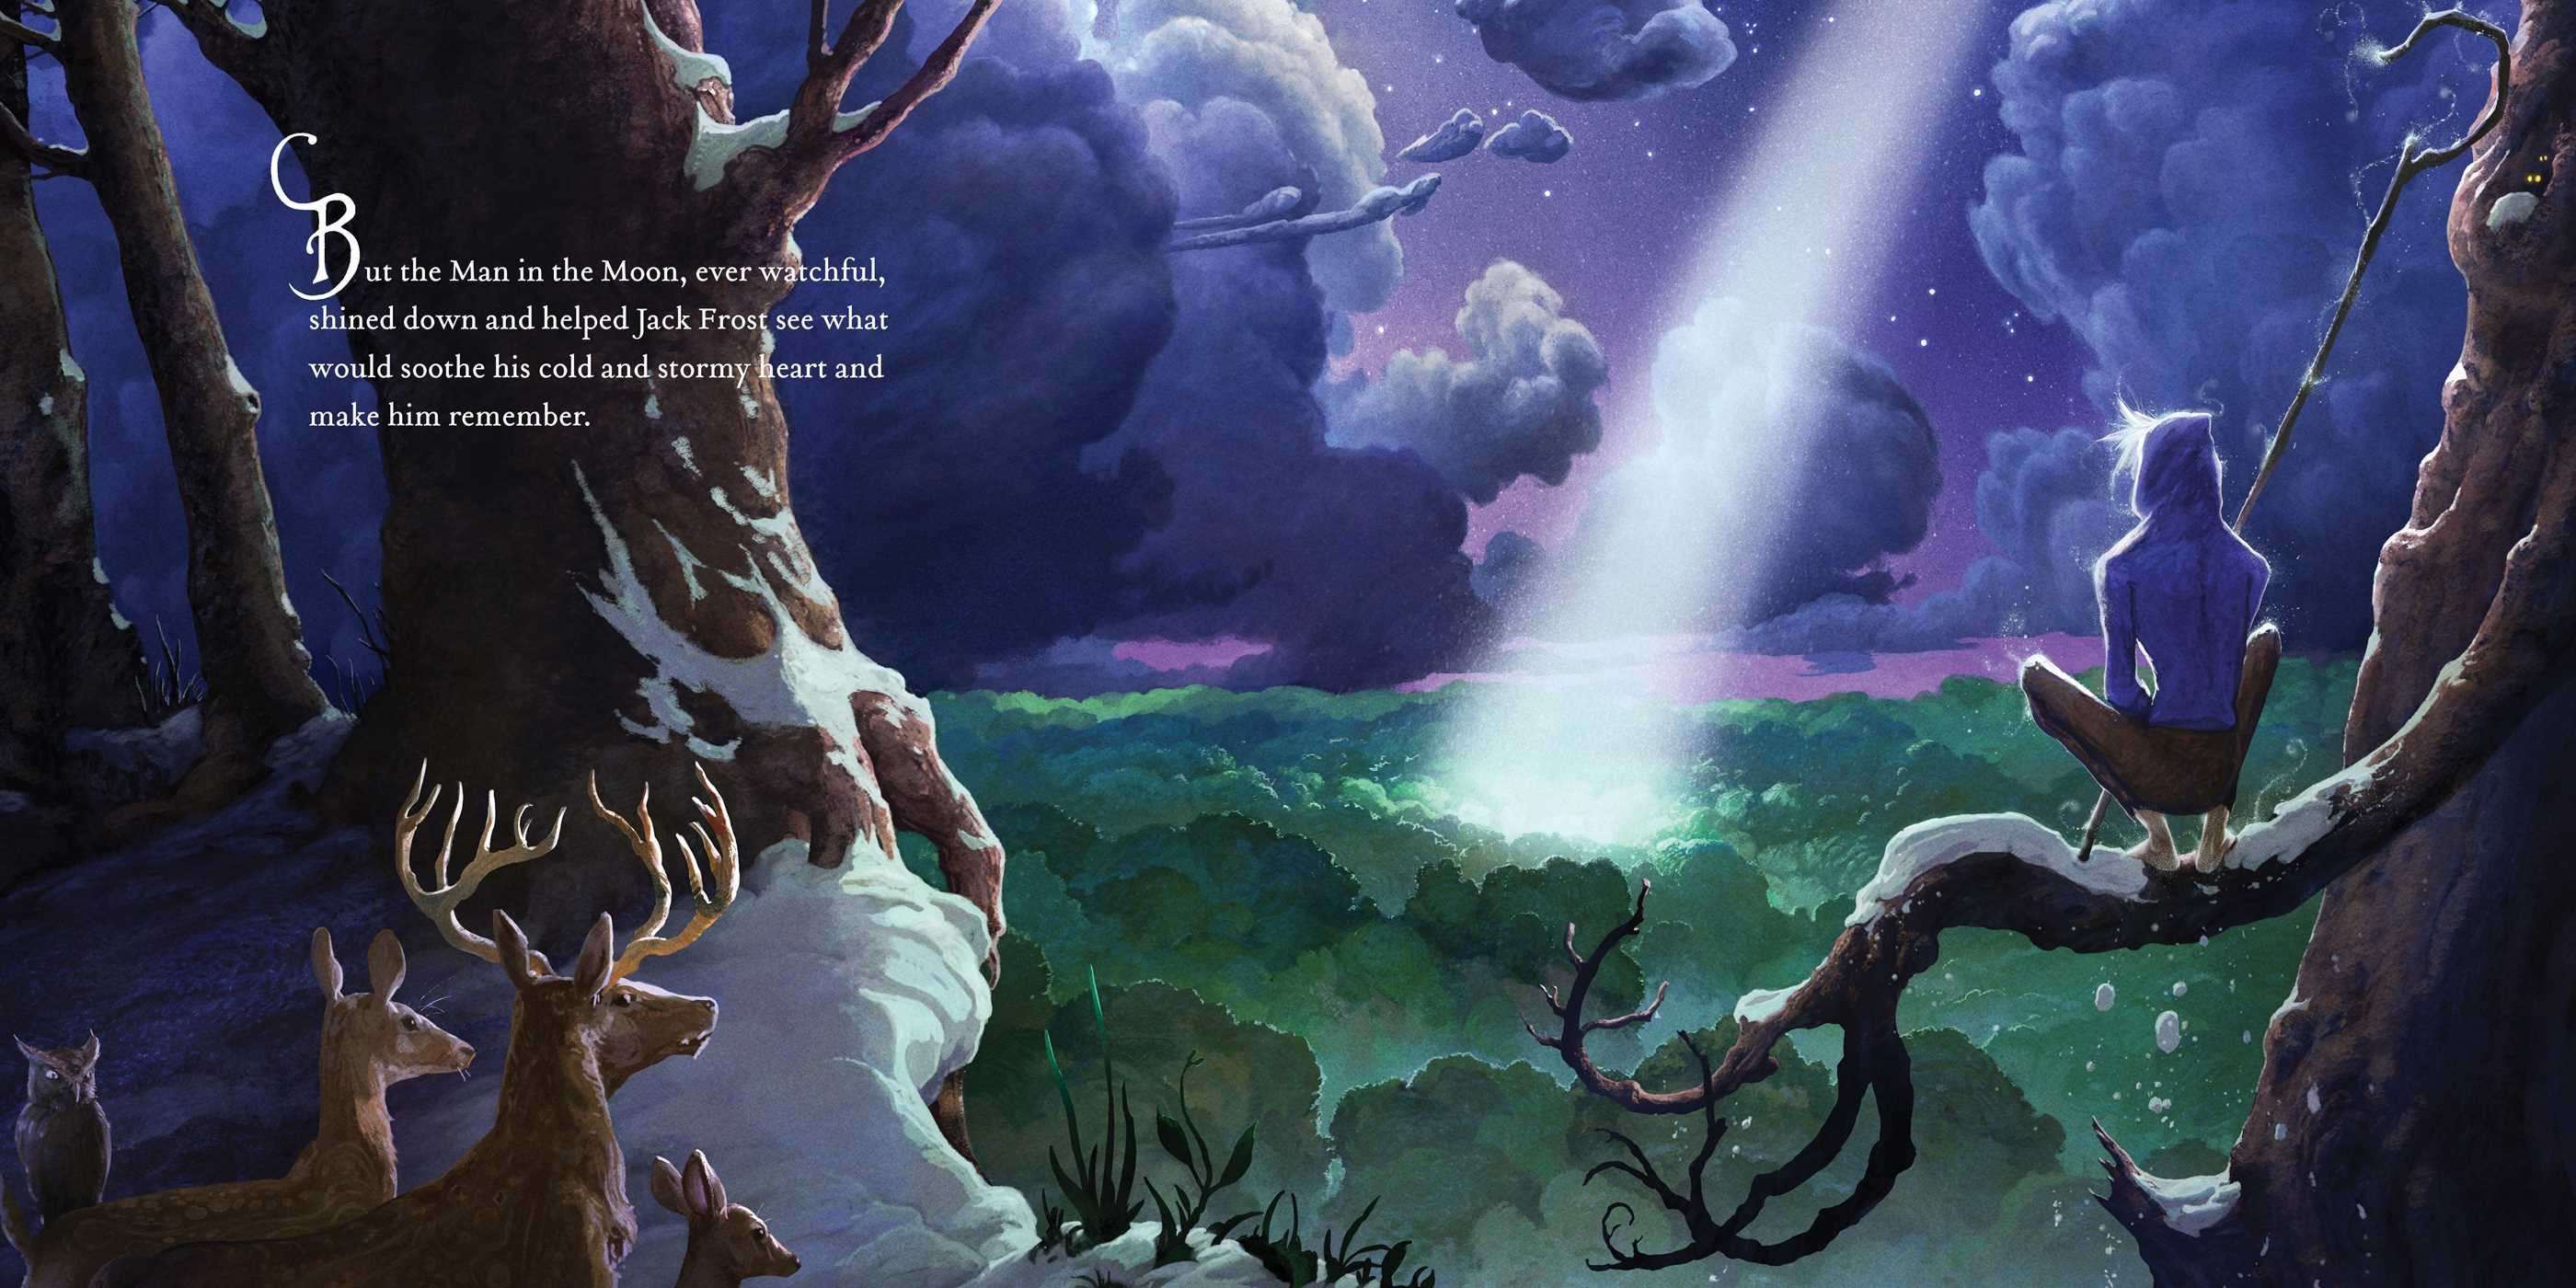 Jack Frost  Book by William Joyce  Official Publisher